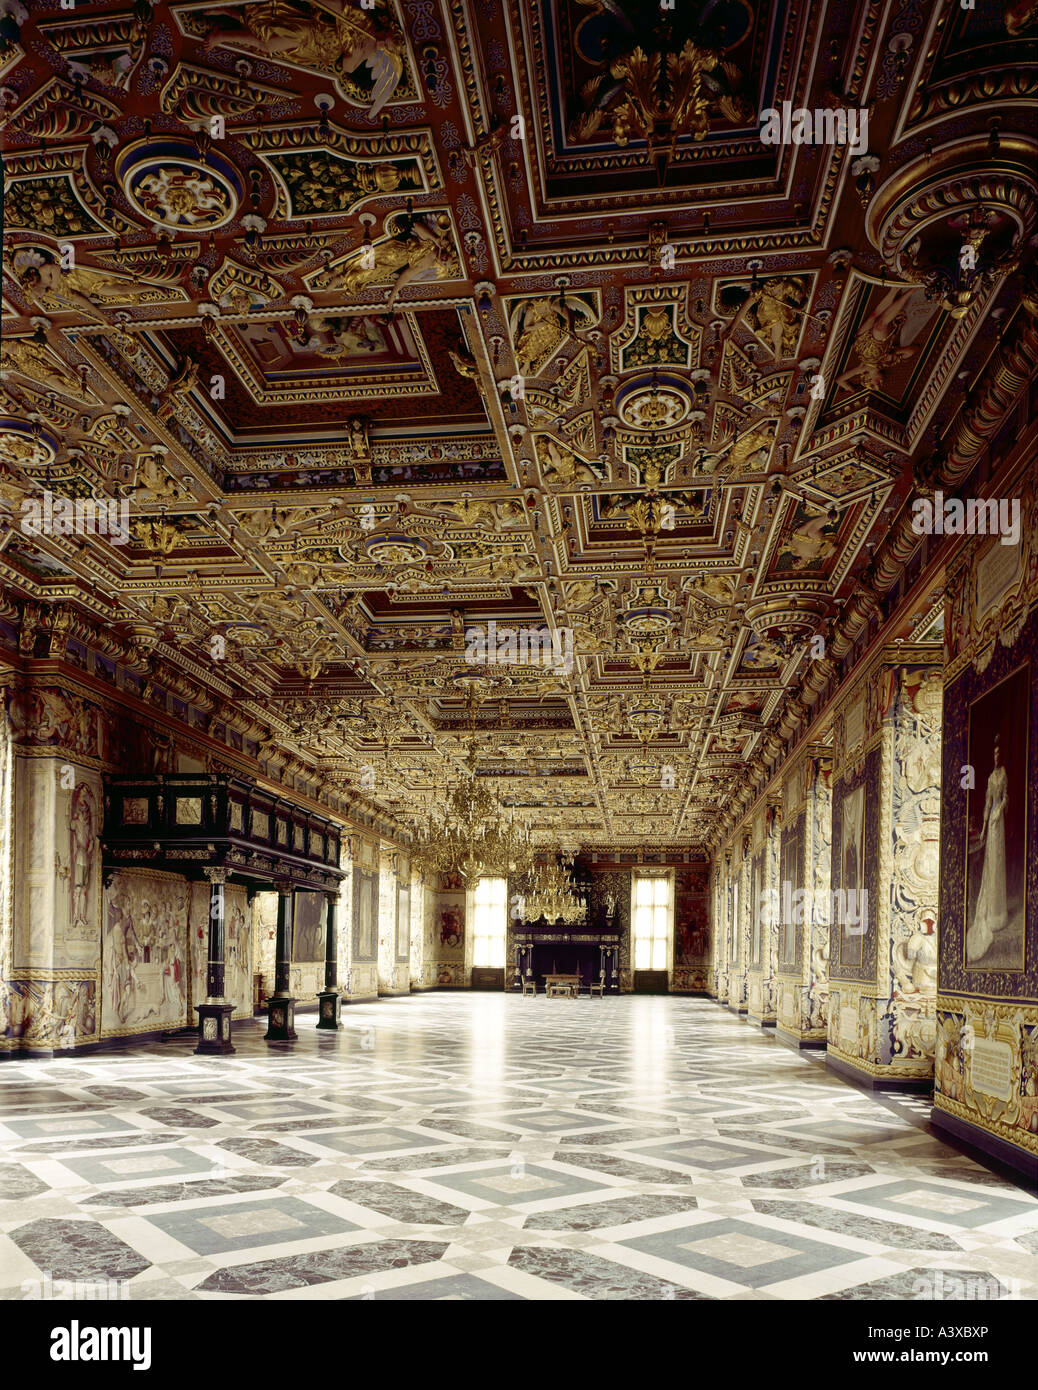 geography/travel, Denmark, Hilleroed, buildings, Frederiksborg castle, interior view, Knights hall, 1580 - 1620, - Stock Image